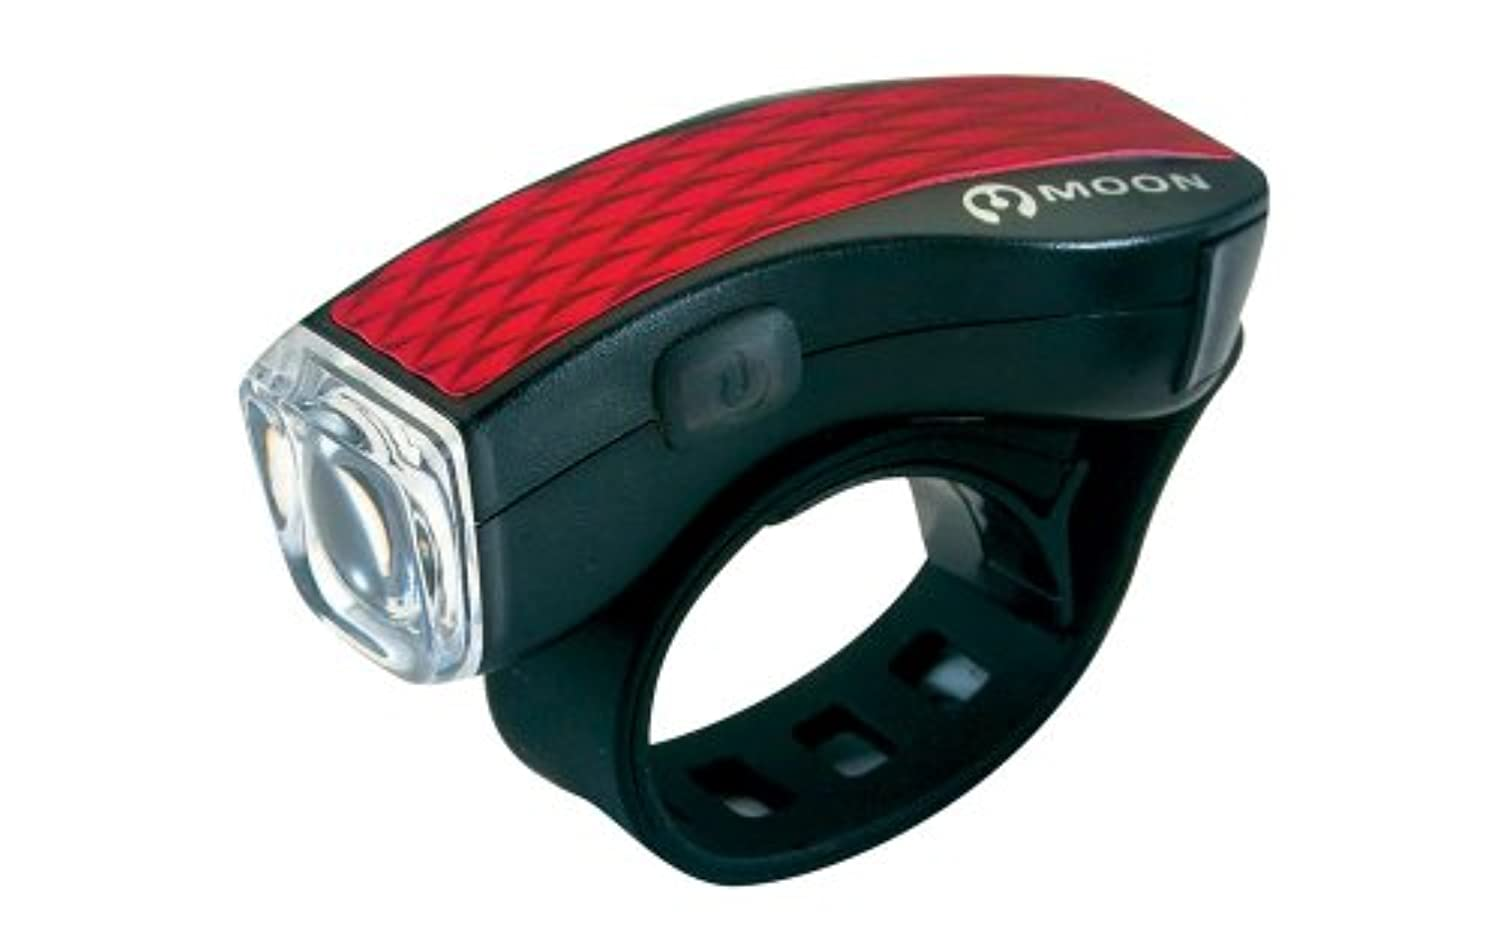 Moon M-3R Rear Light -Red